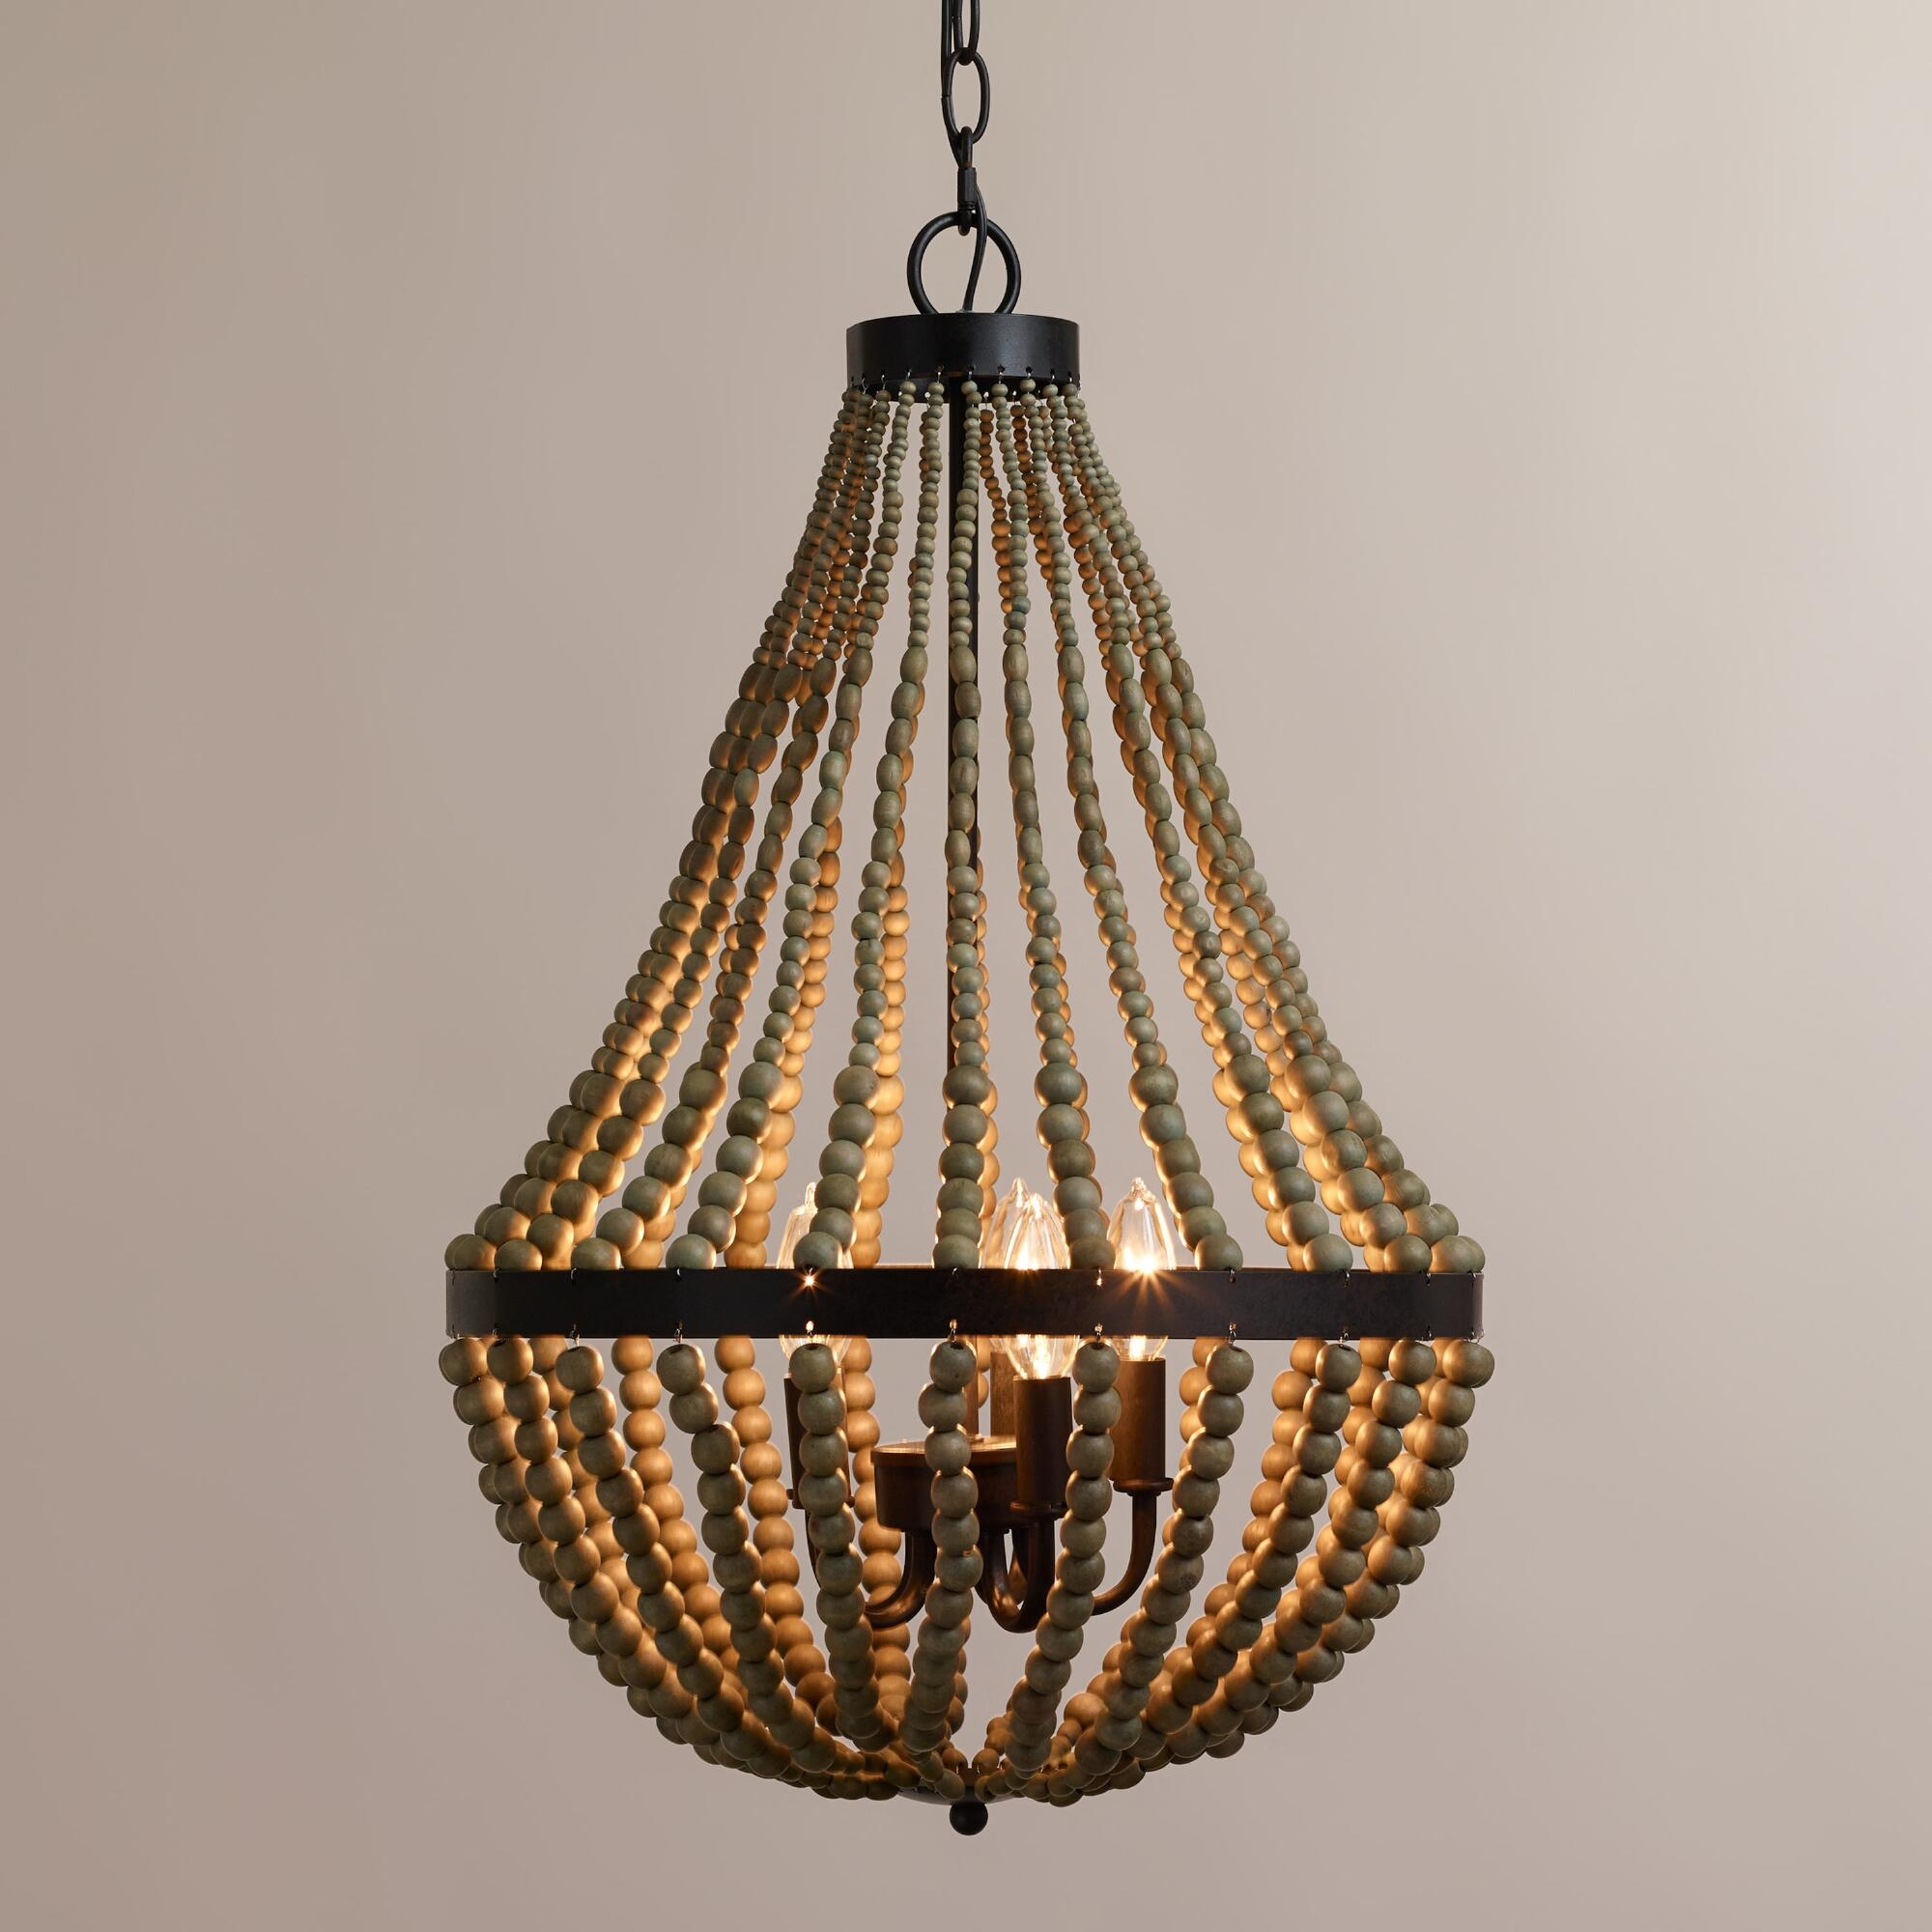 Interior Amazing Ceiling Light Wood Bead Chandelier For Home With Small Turquoise Beaded Chandeliers (Image 21 of 25)